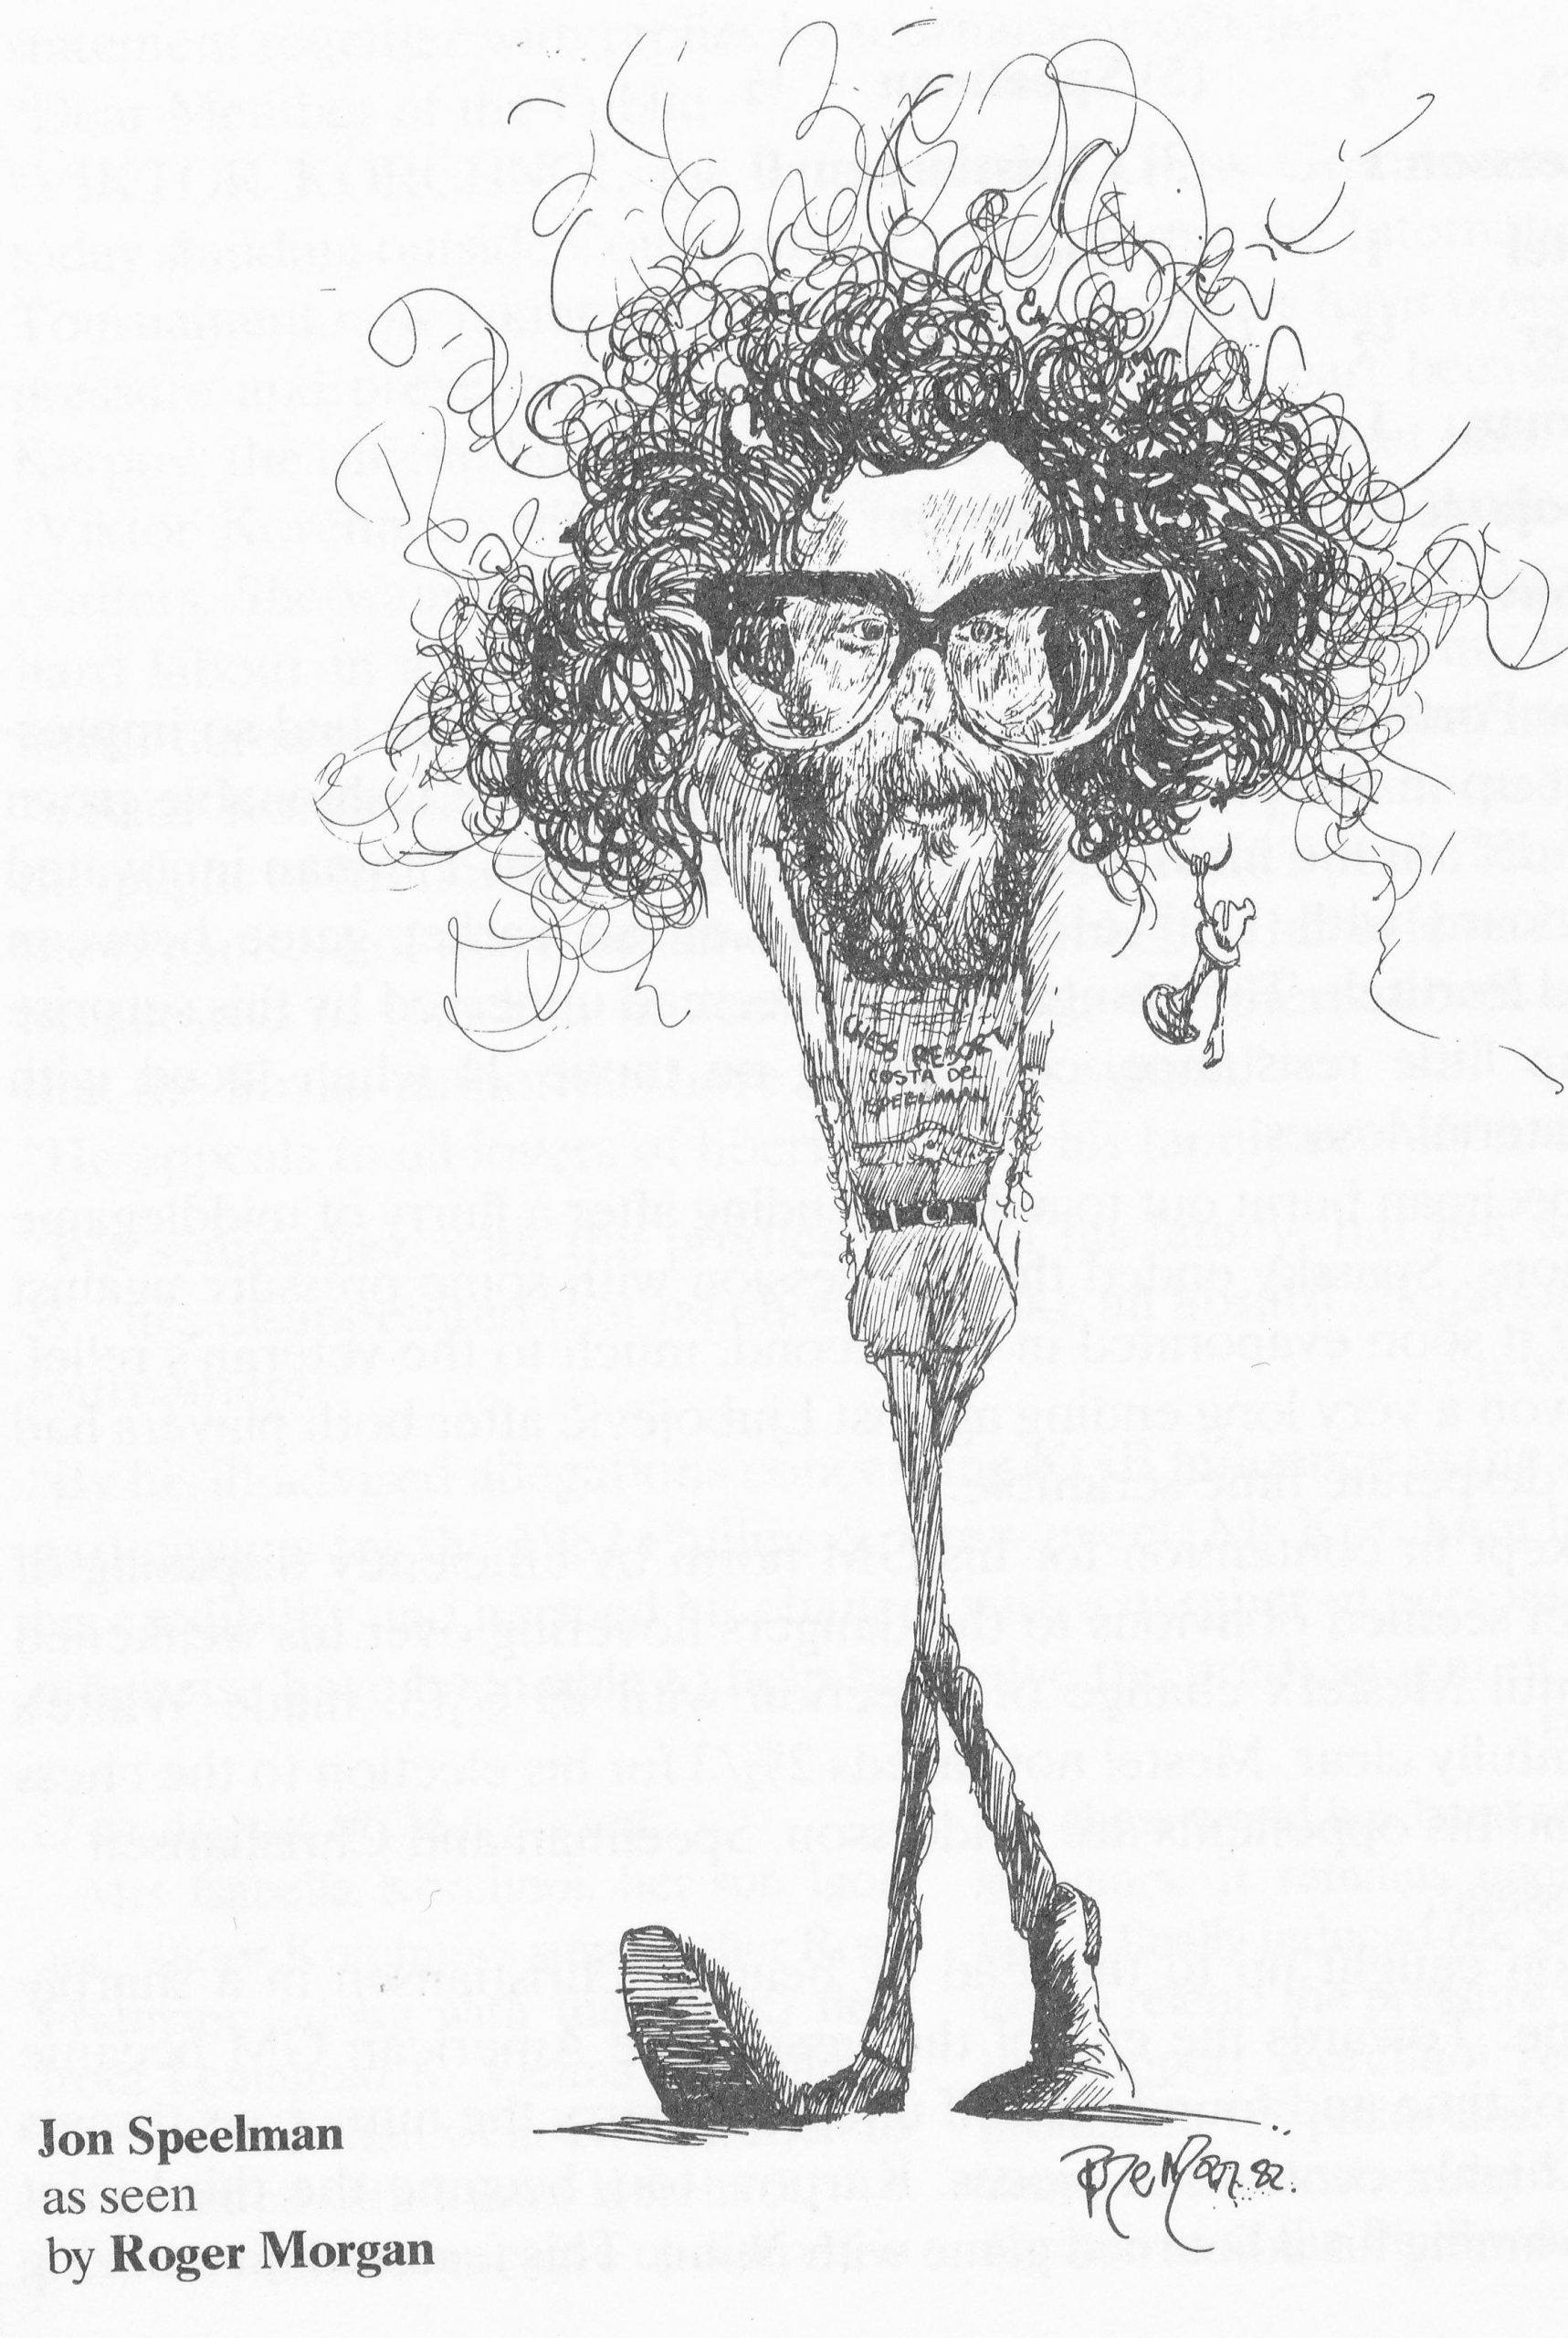 Jonathan Simon Speelman (02-x-1956) as imagined by Roger Morgan, 1982